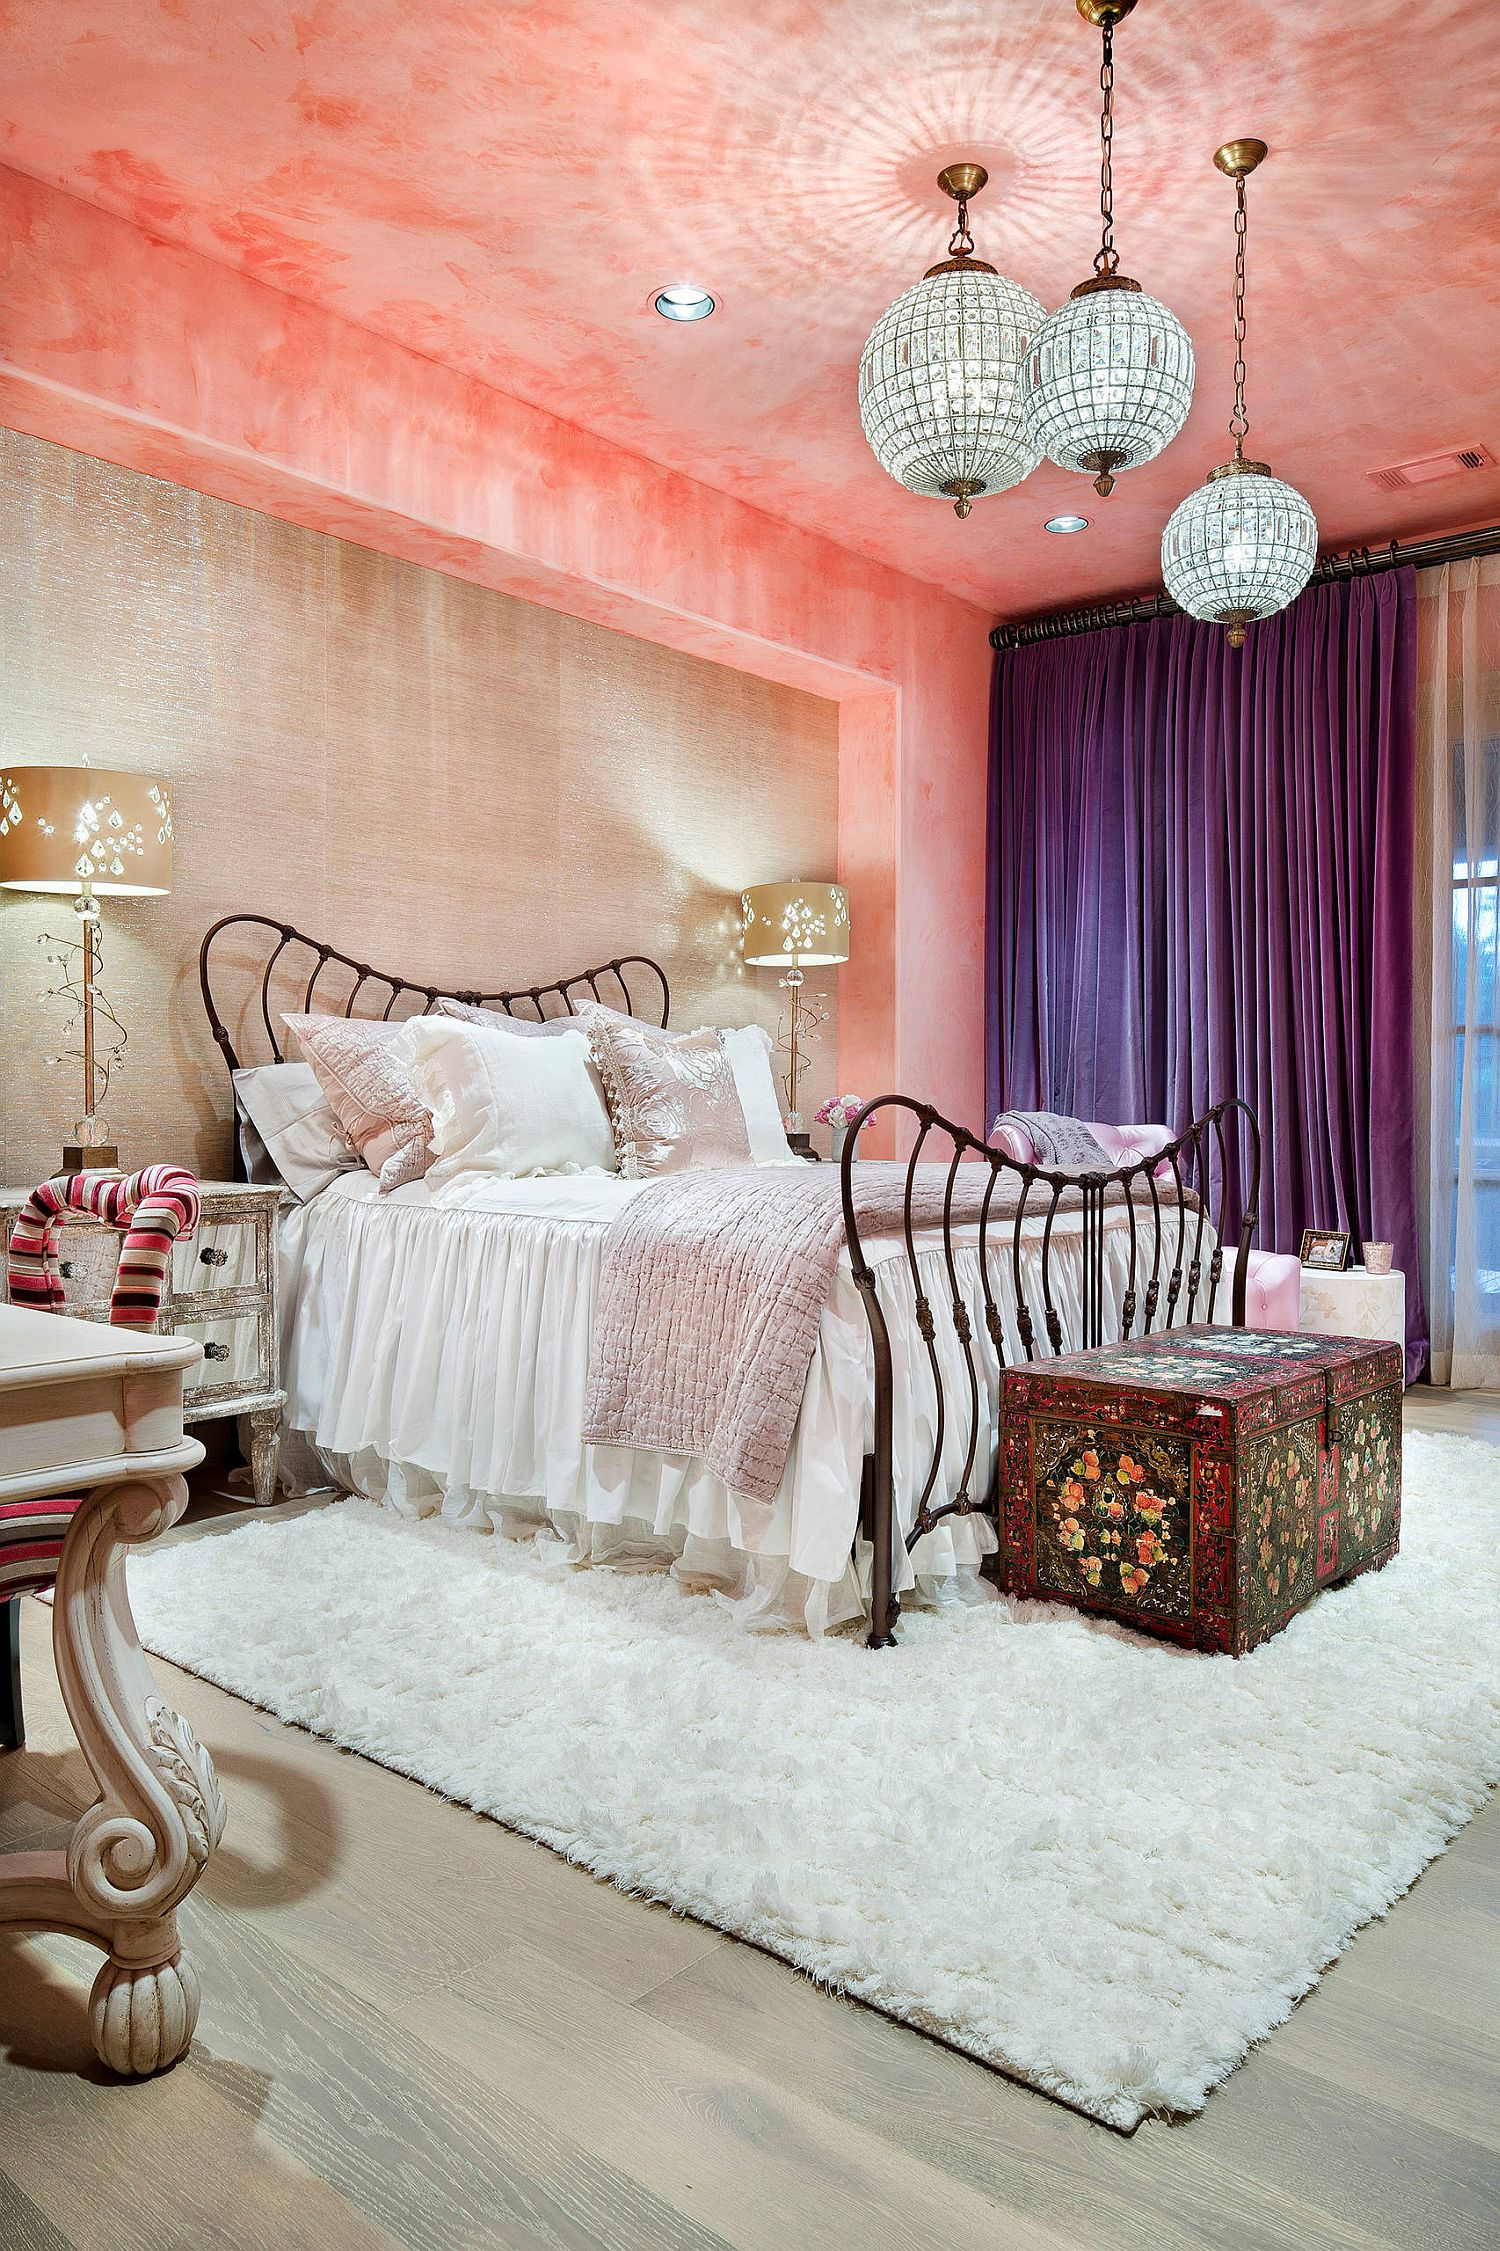 Stunning kids' bedroom in pink takes a trip down the more classic route